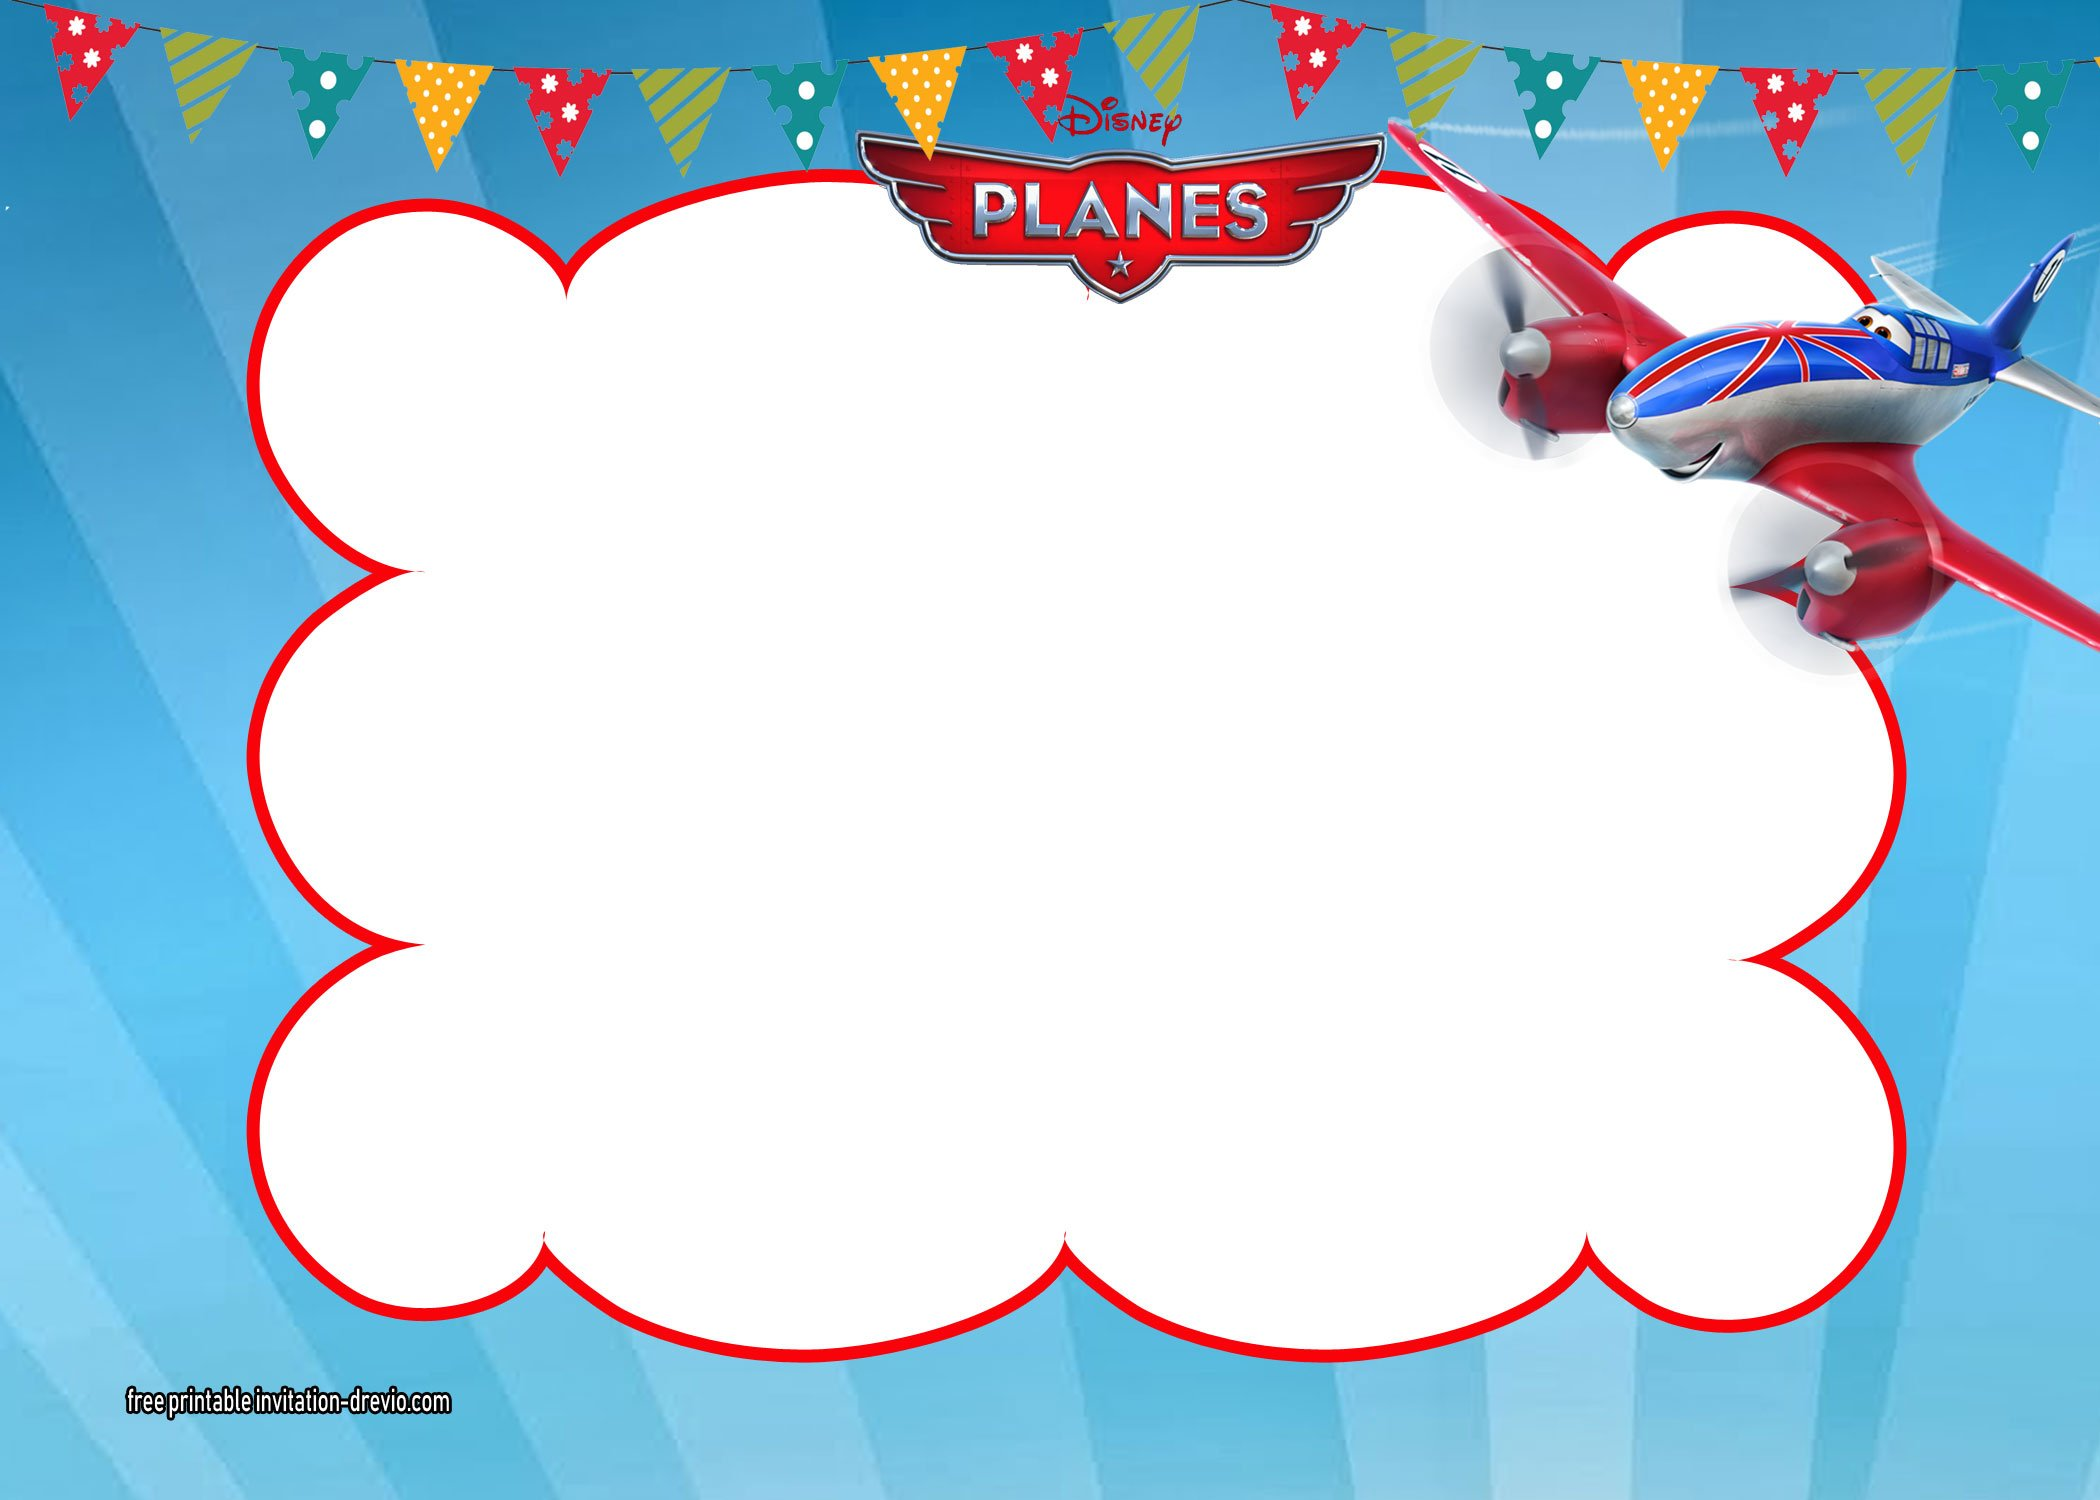 Disney Planes Invitations Templates | FREE Invitation Templates - Drevio